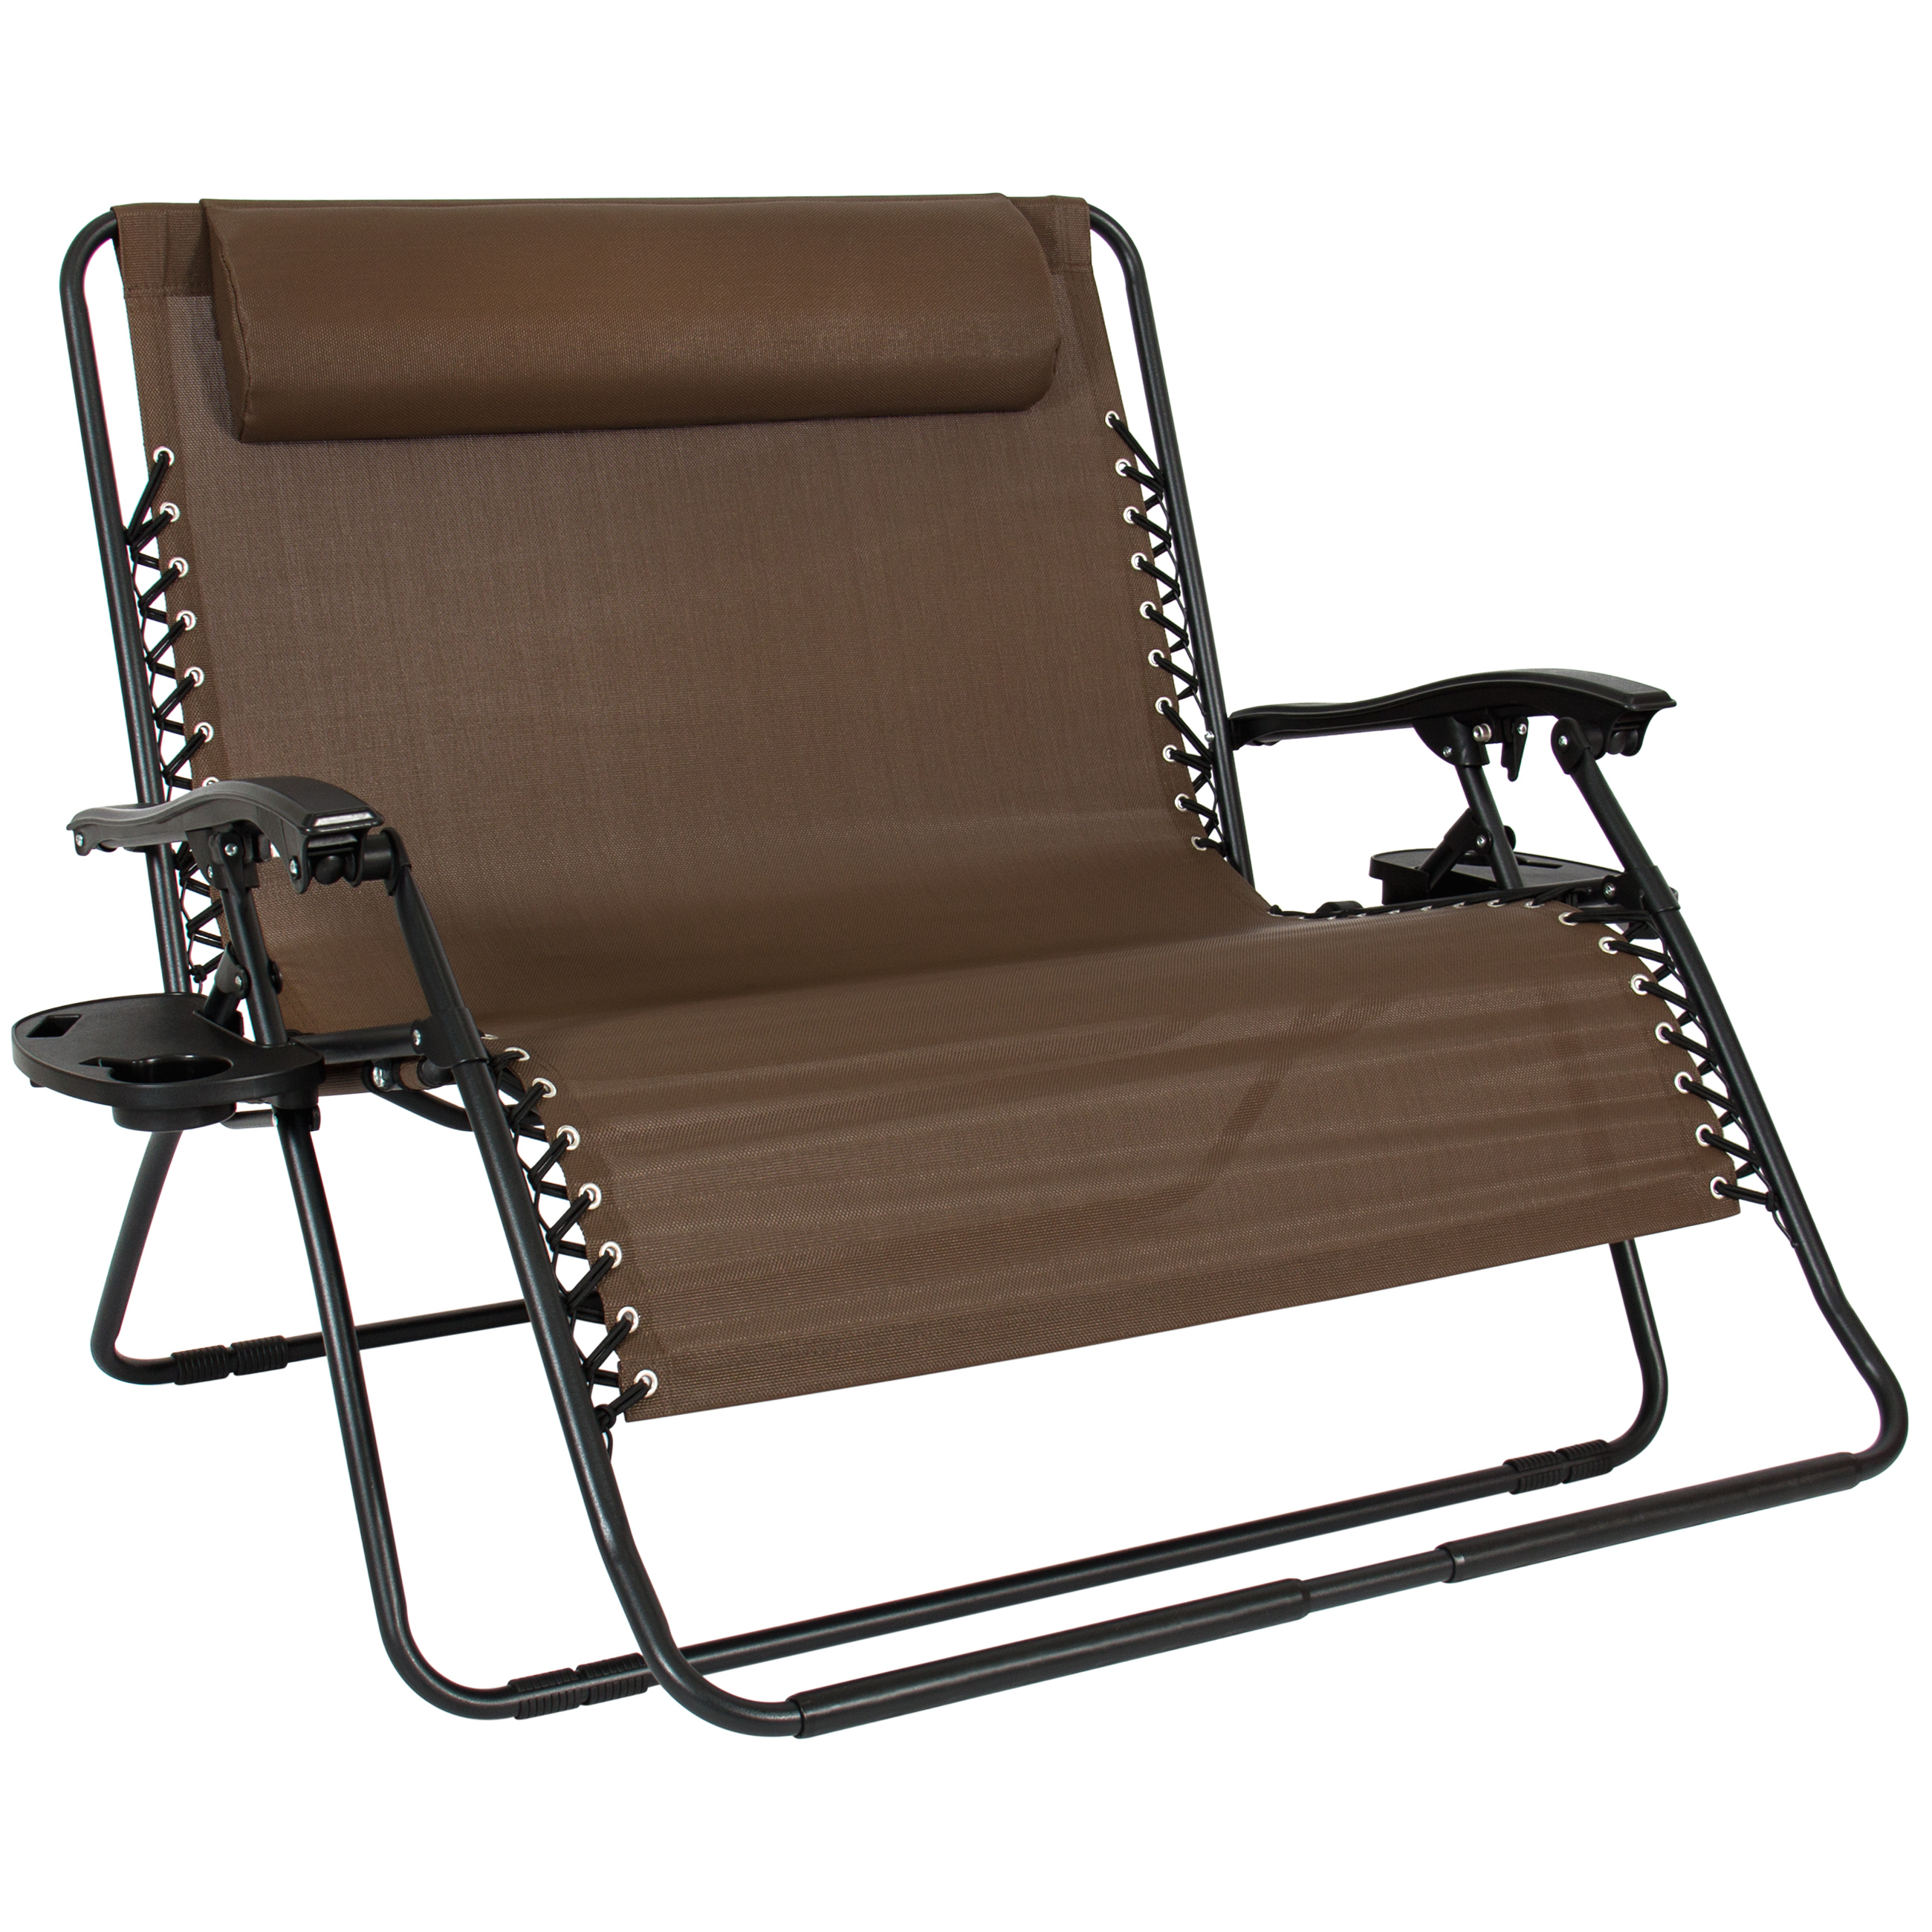 Indoor Zero Gravity Chair Folding 2 Person Oversized Zero Gravity Lounge Chair W 2